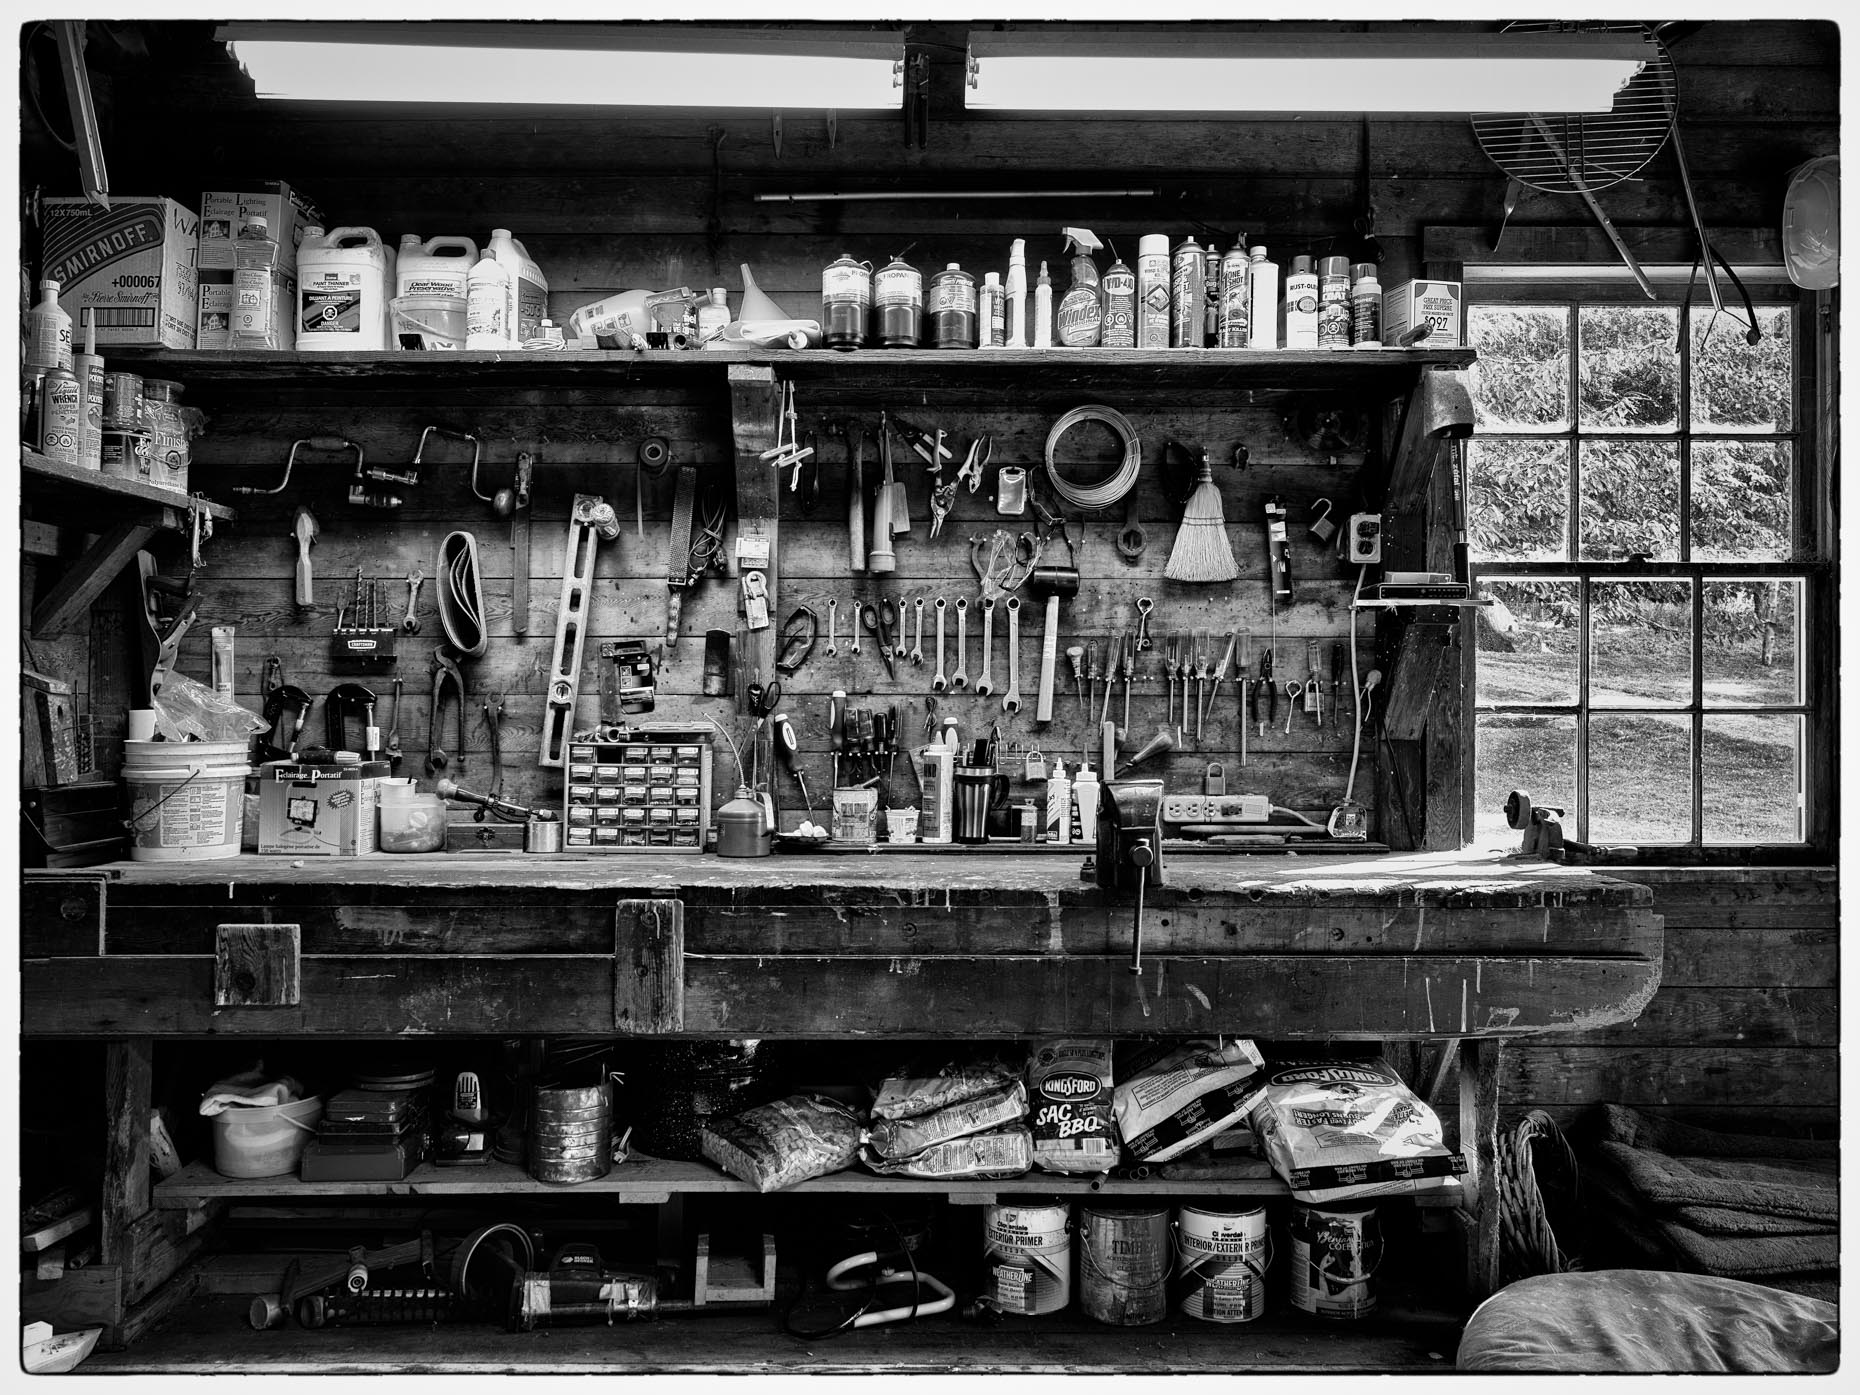 Interior of a workshop on Salt Spring Island, British Columbia, Canada.